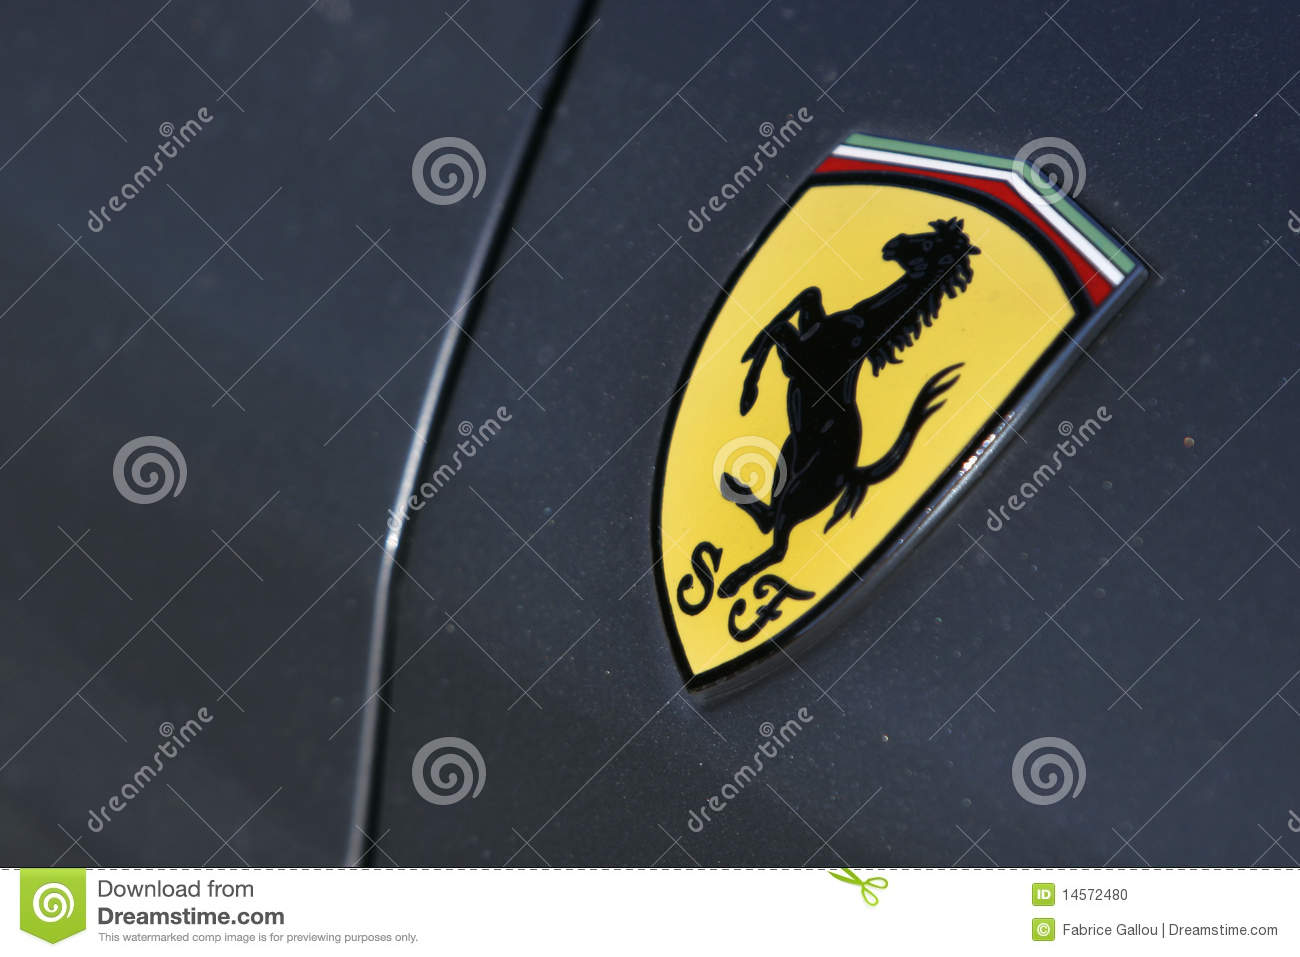 Ferrari logo stock photos download 1217 images ferrari logo on gray sport car cavallino rampante badge stock photo buycottarizona Choice Image